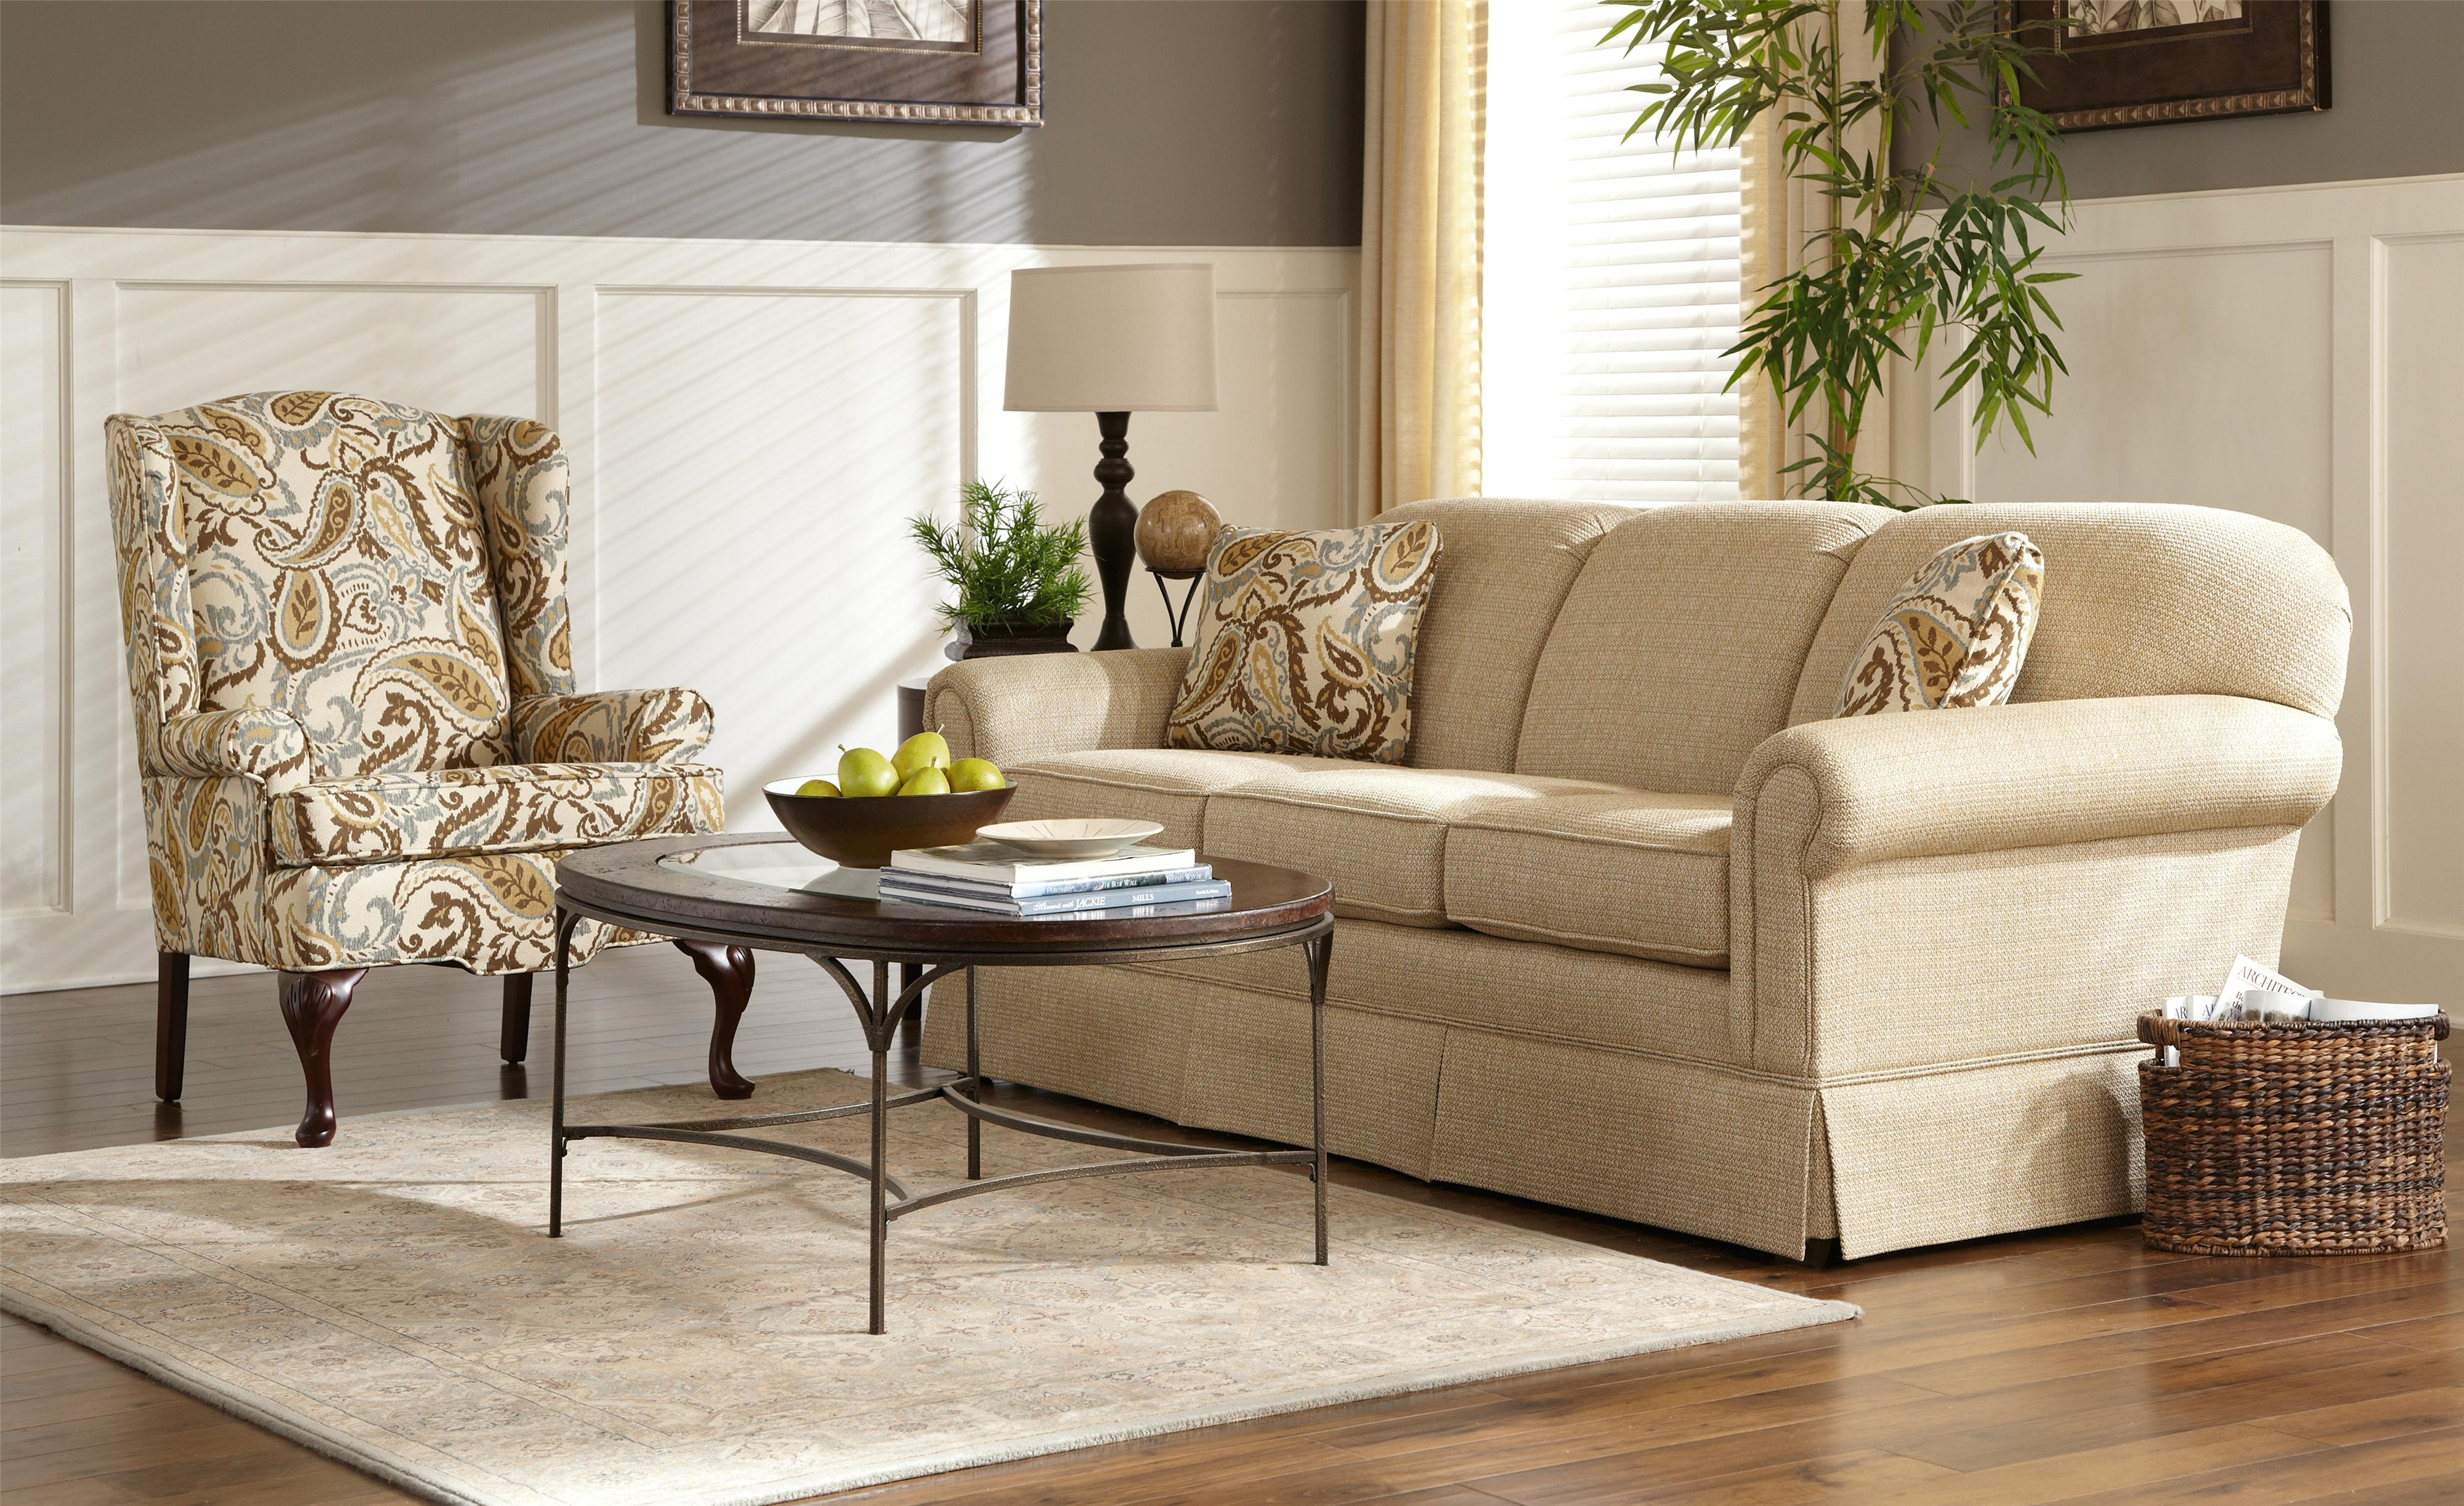 4200 Stationary Living Room Group by Craftmaster at Esprit Decor Home Furnishings